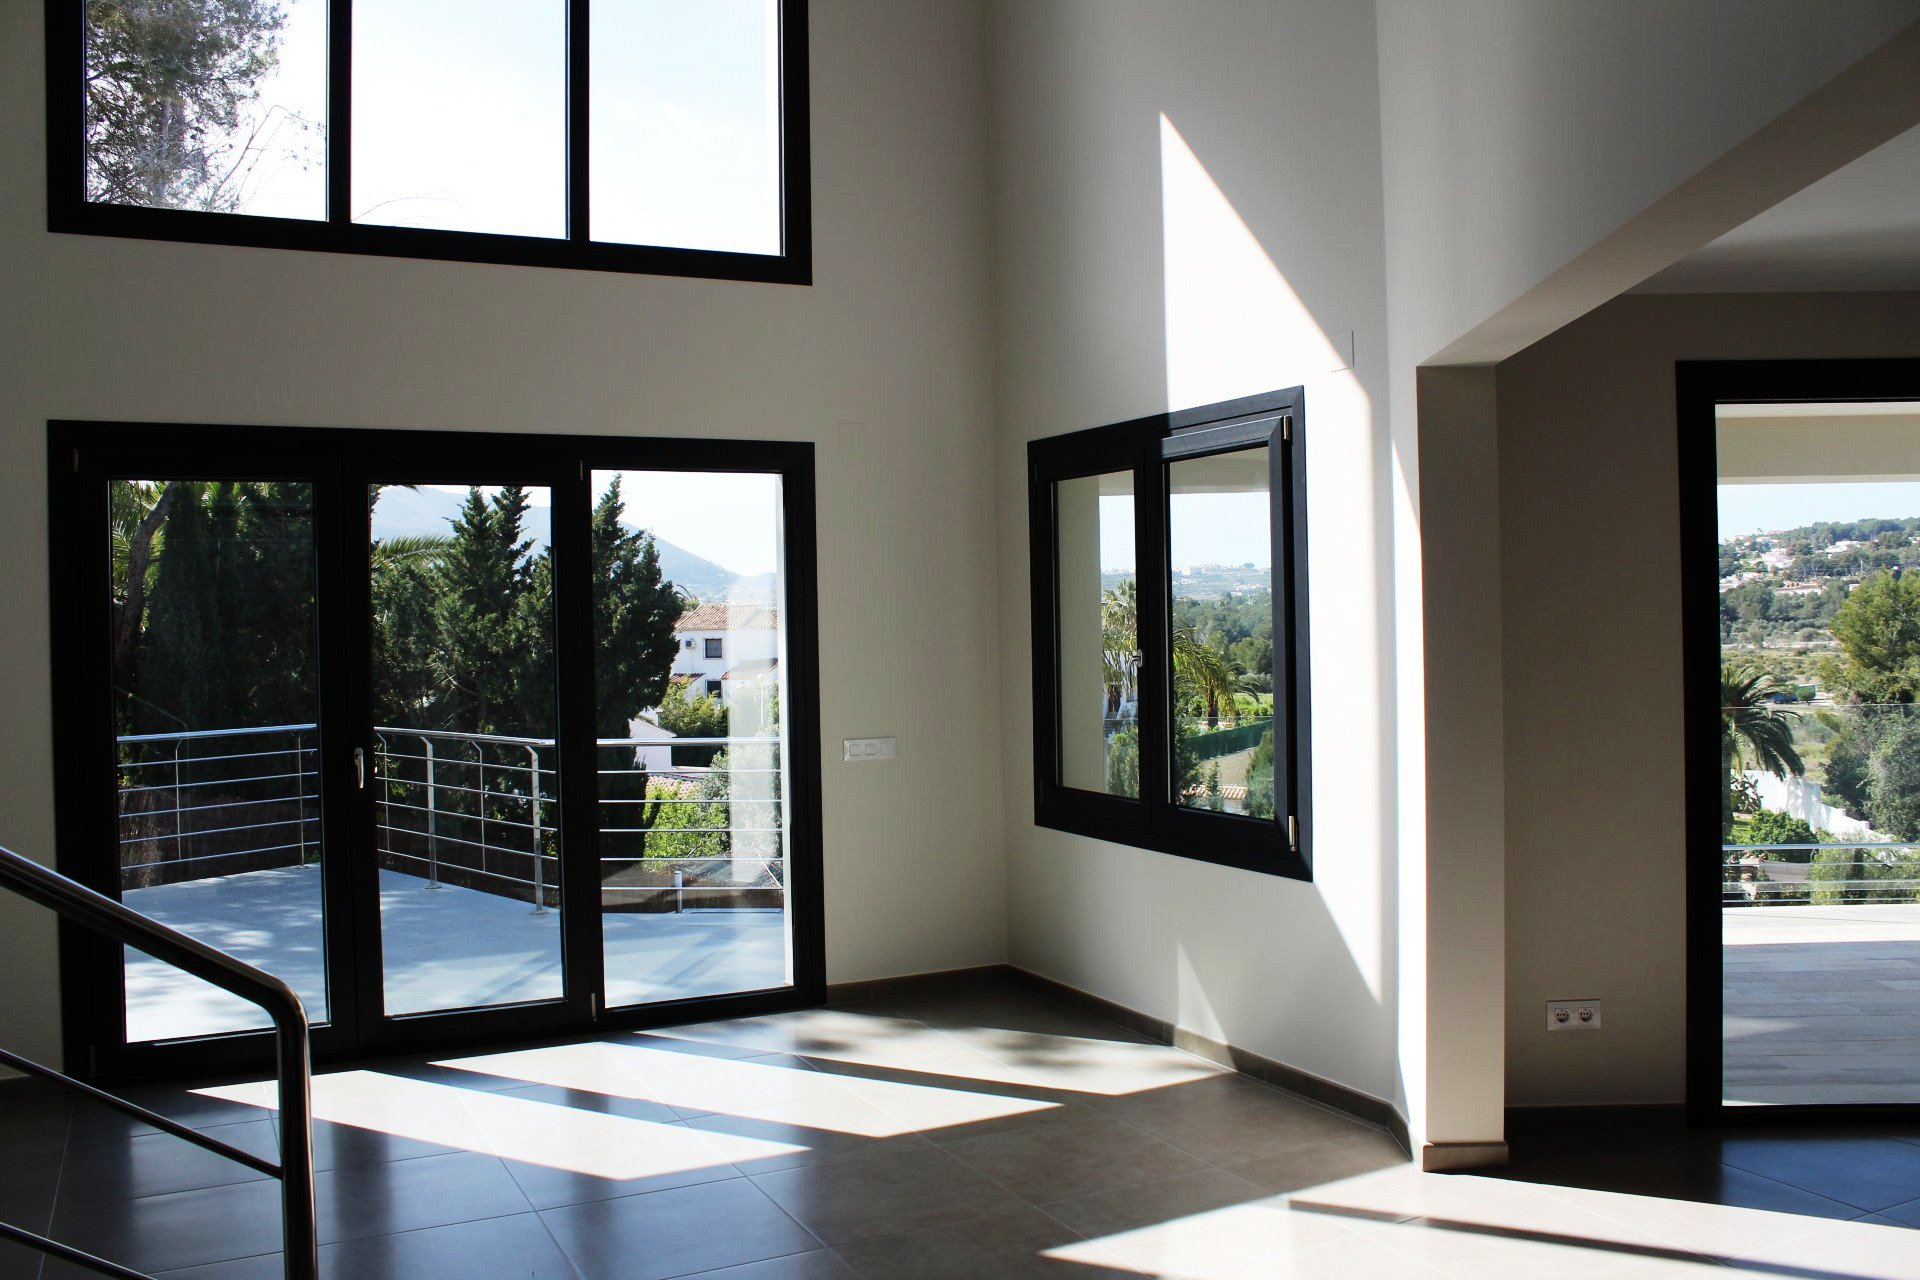 Great new build villa with 3 bed/3 bath in Javea